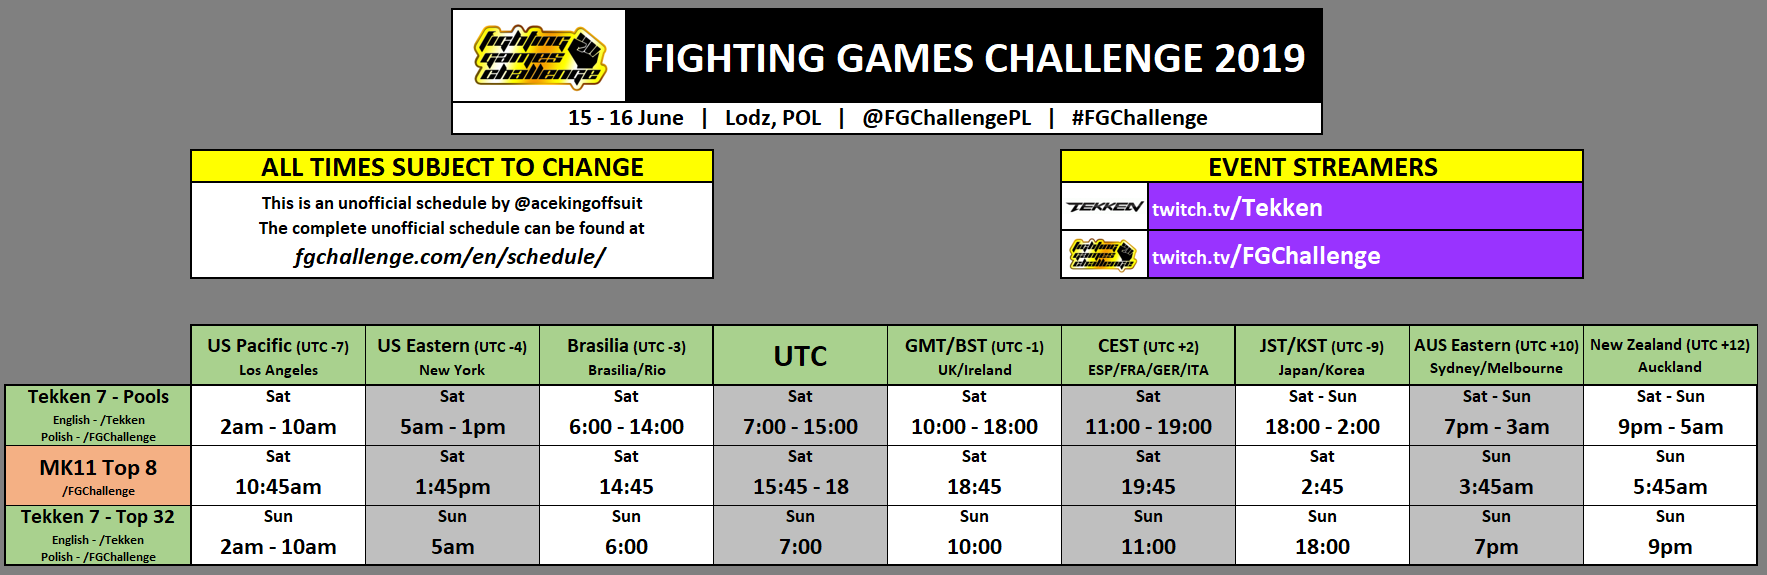 Fighting Games Challenge 2019 Event Schedule 1 out of 1 image gallery